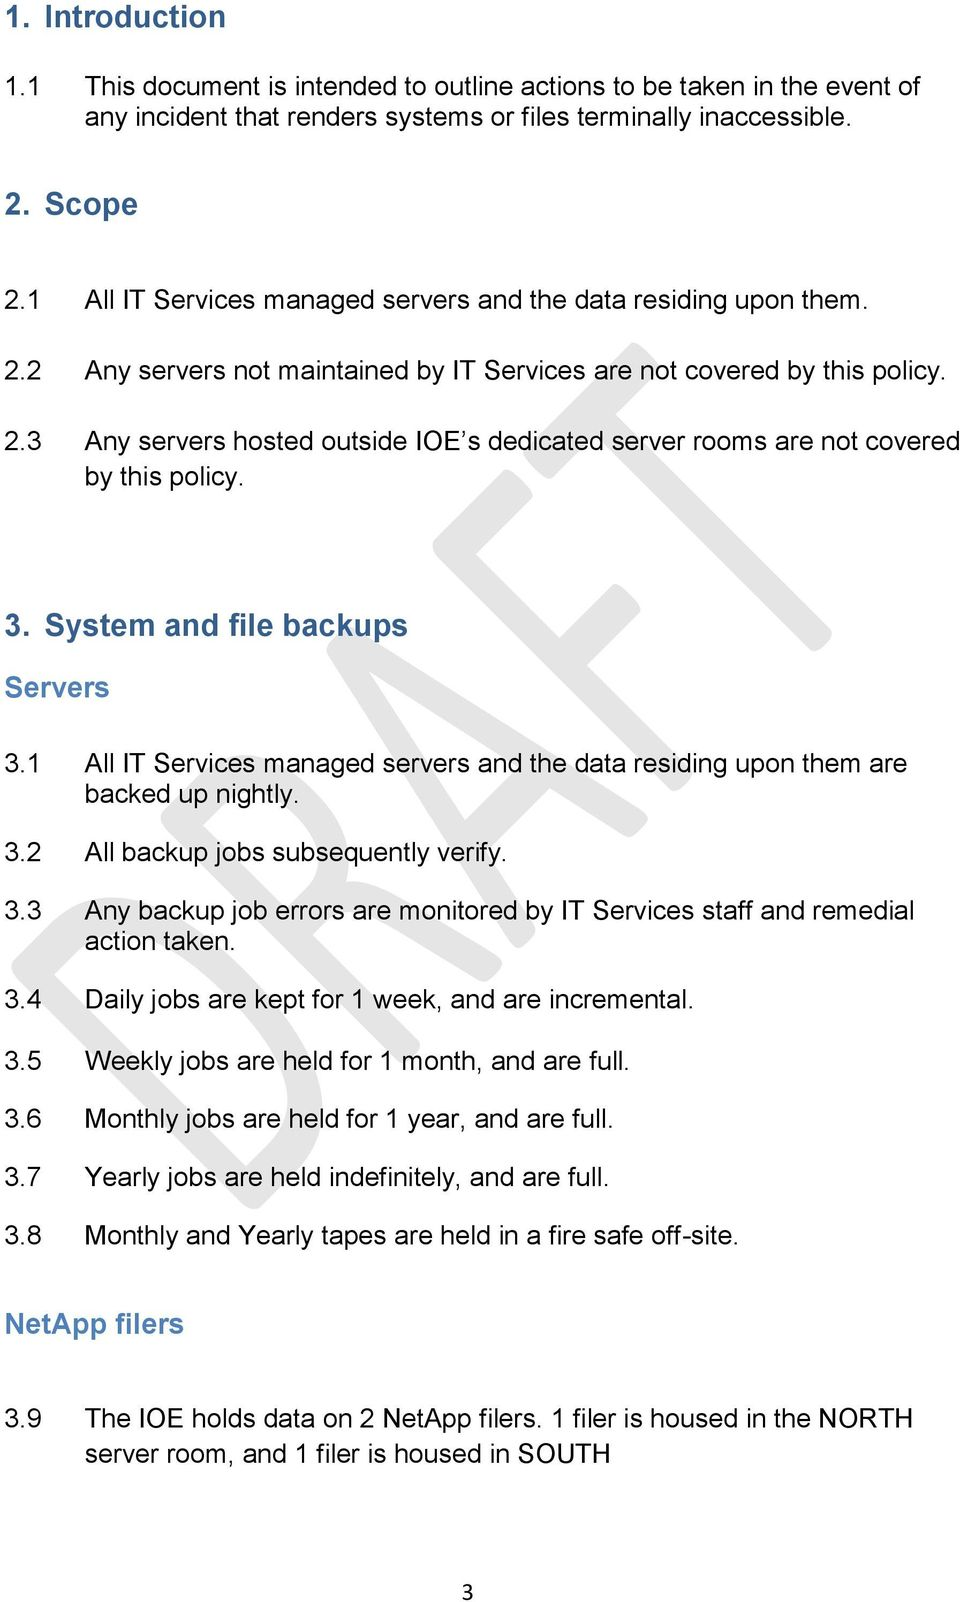 3. System and file backups Servers 3.1 All IT Services managed servers and the data residing upon them are backed up nightly. 3.2 All backup jobs subsequently verify. 3.3 Any backup job errors are monitored by IT Services staff and remedial action taken.